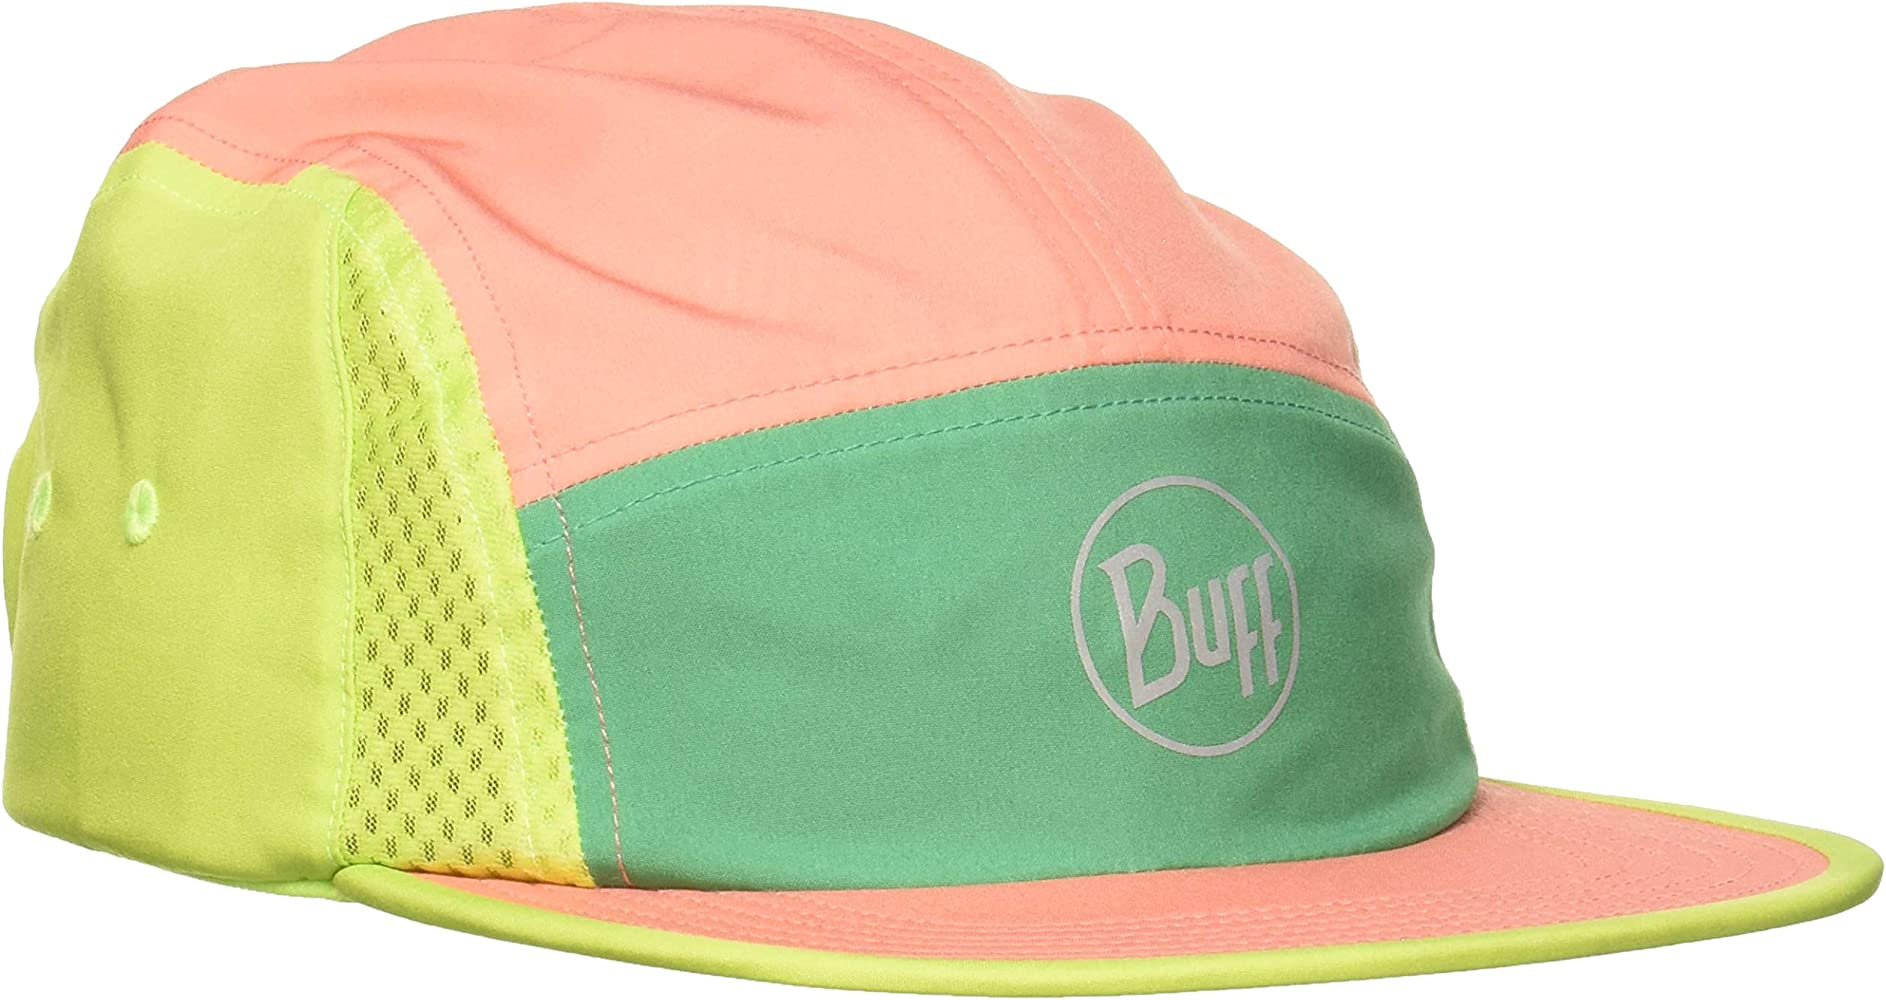 Gorra Multi Blocks Run by BUFF gorra outdoorgorra de deporte ...